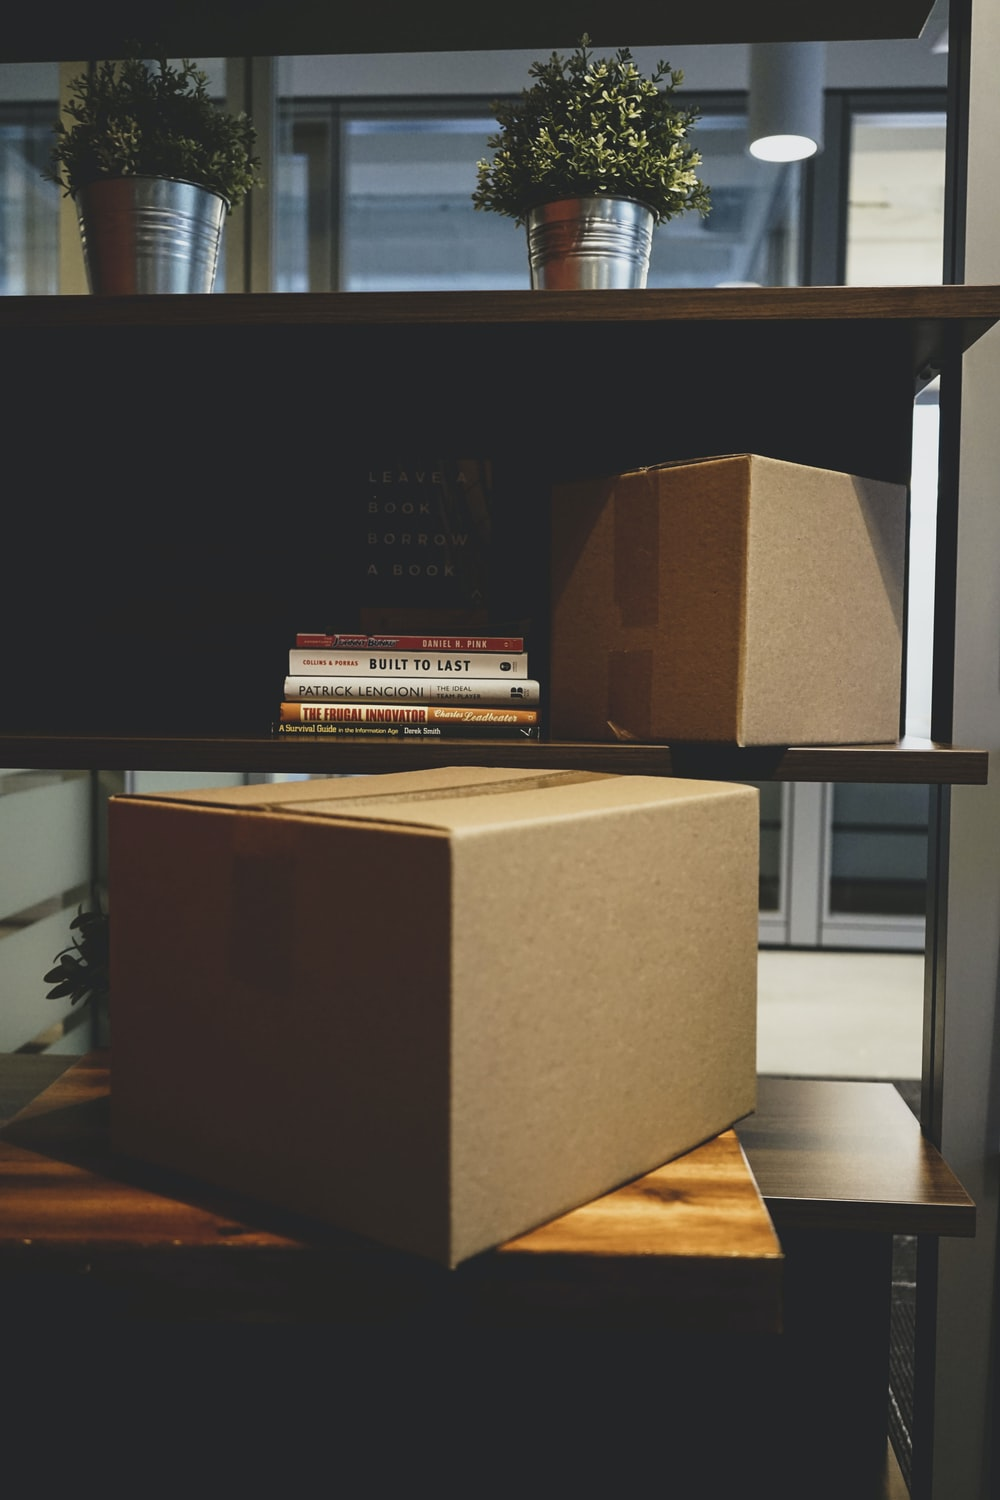 two brown boxes and DVD cases on rack